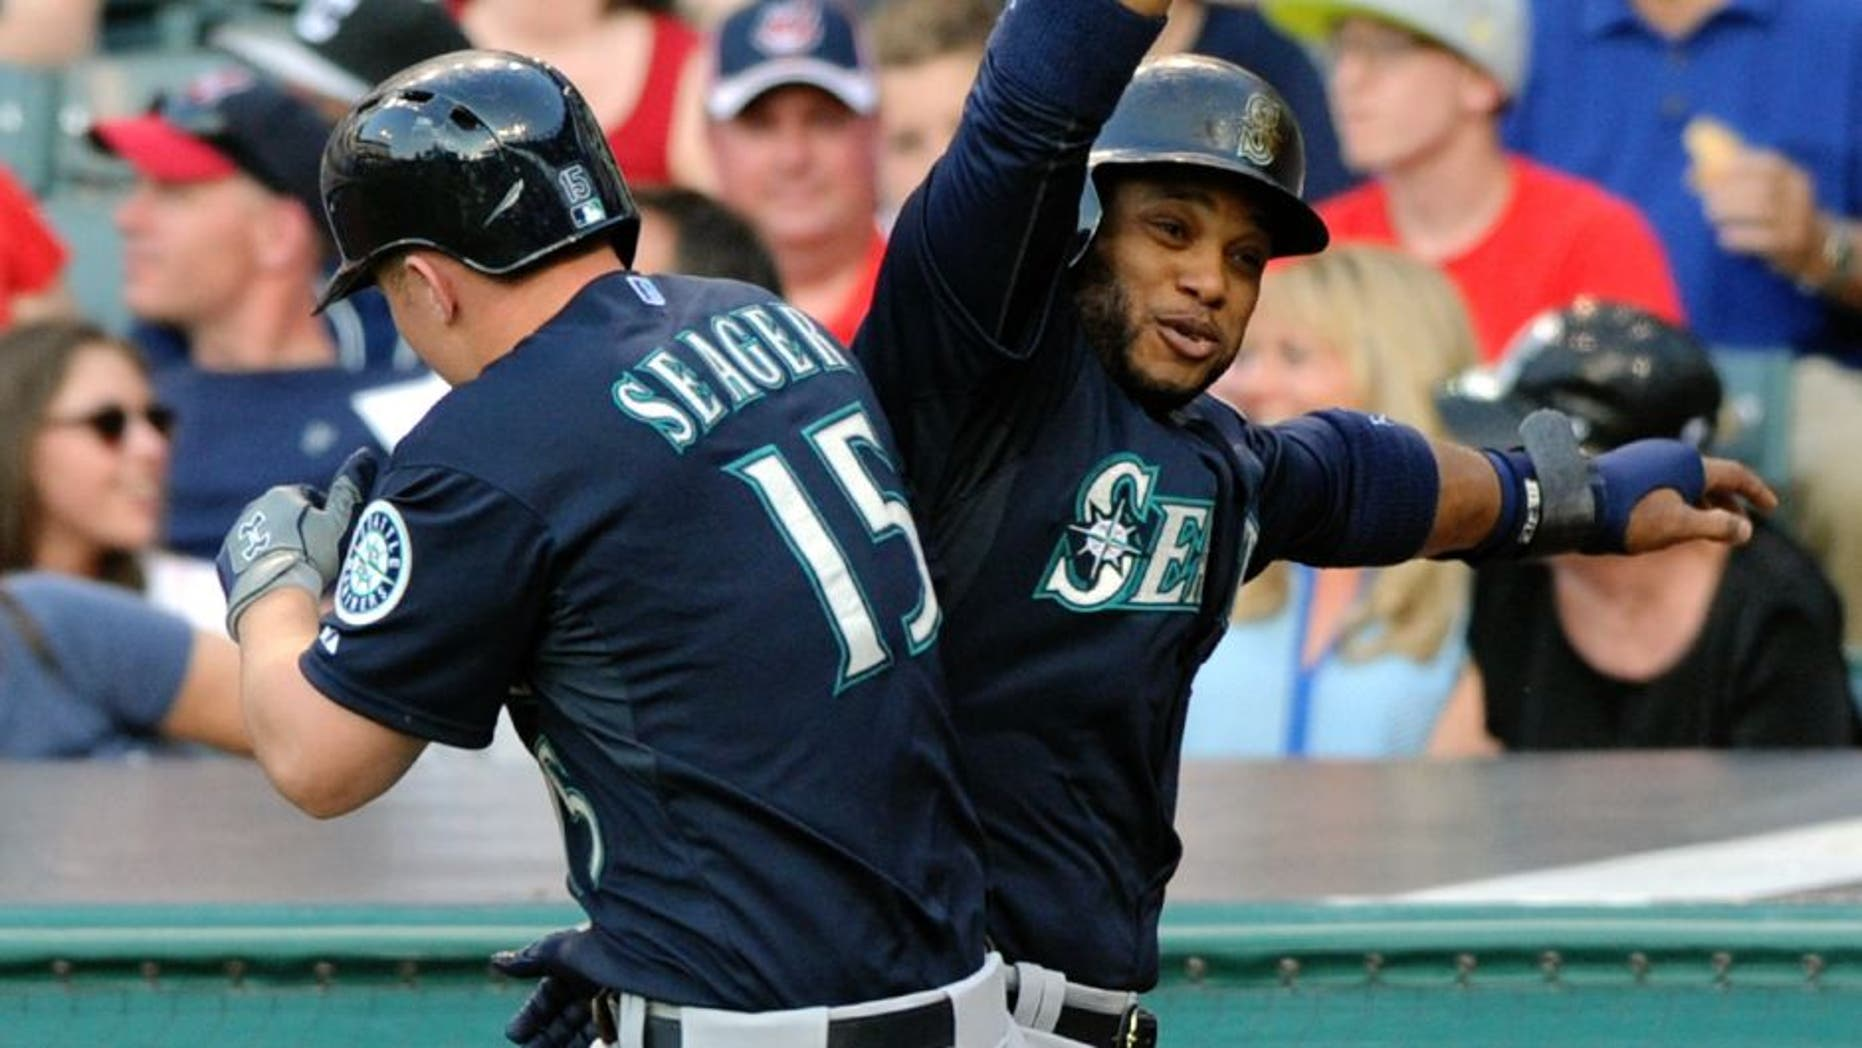 Jun 10, 2015; Cleveland, OH, USA; Seattle Mariners third baseman Kyle Seager (15) celebrates with second baseman Robinson Cano (22) after hitting a grand slam home run during the third inning against the Cleveland Indians at Progressive Field. Mandatory Credit: Ken Blaze-USA TODAY Sports